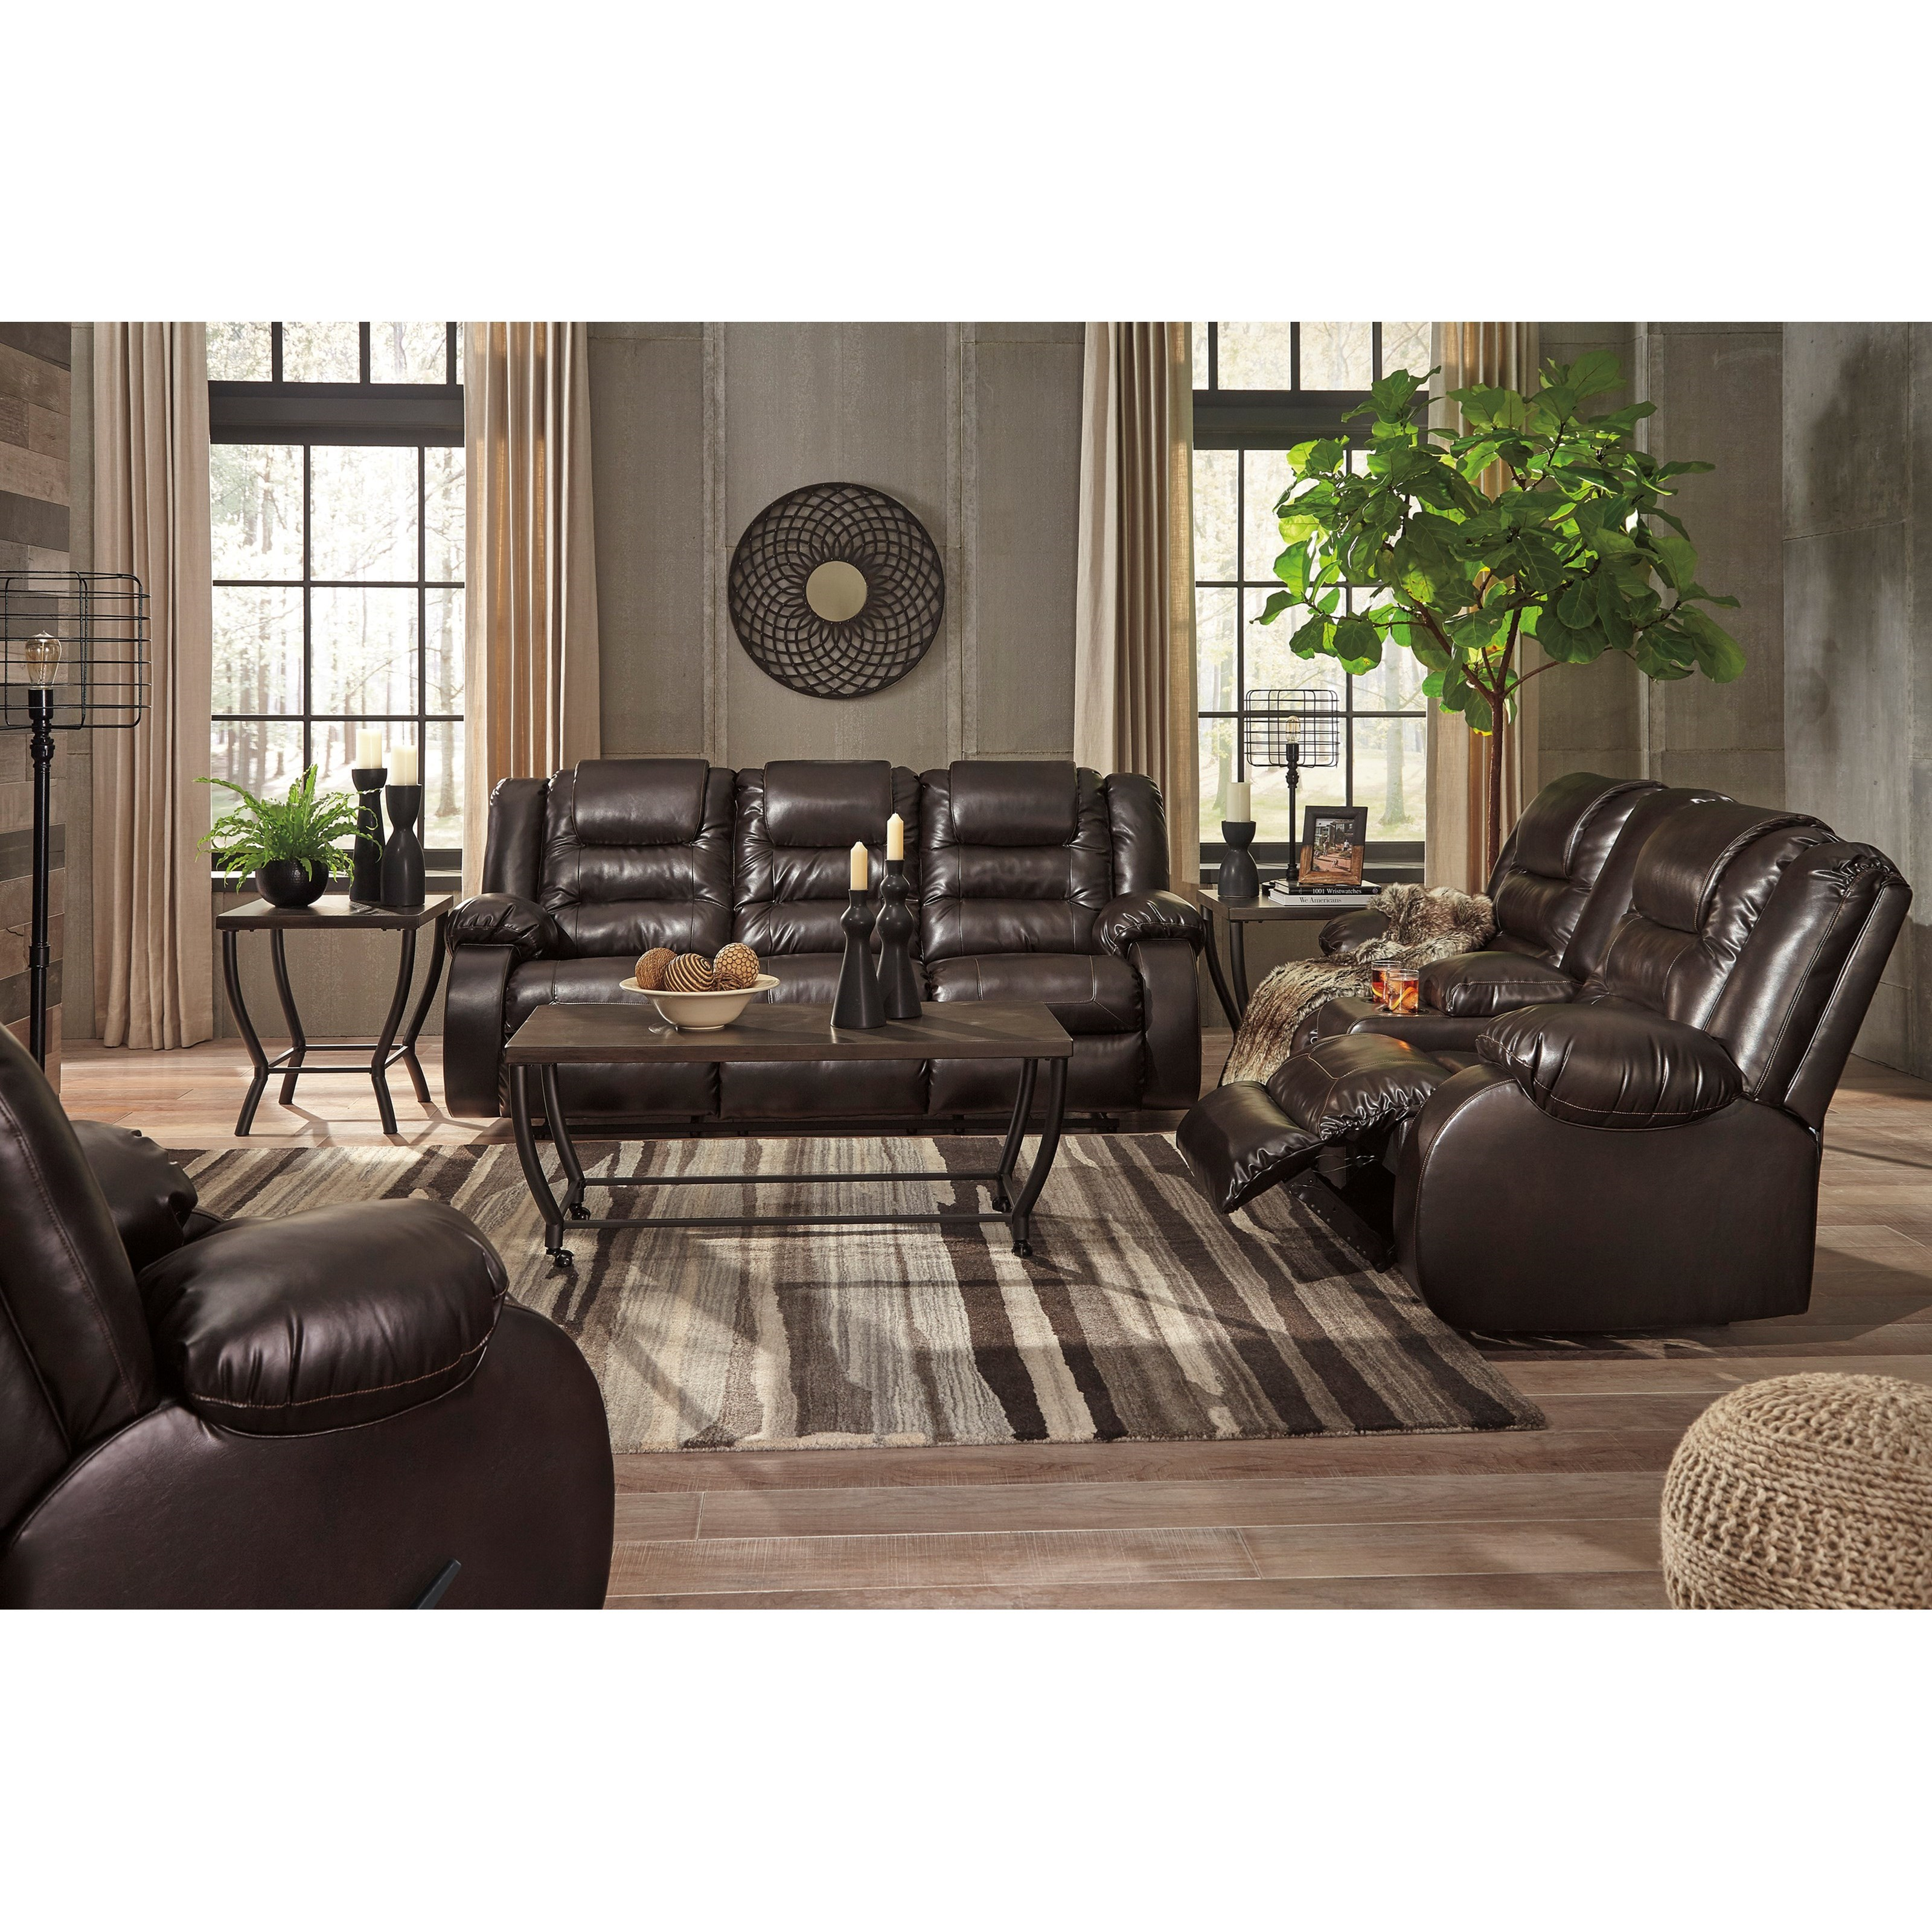 Signature design by ashley vacherie reclining living room for Ashley furniture appleton